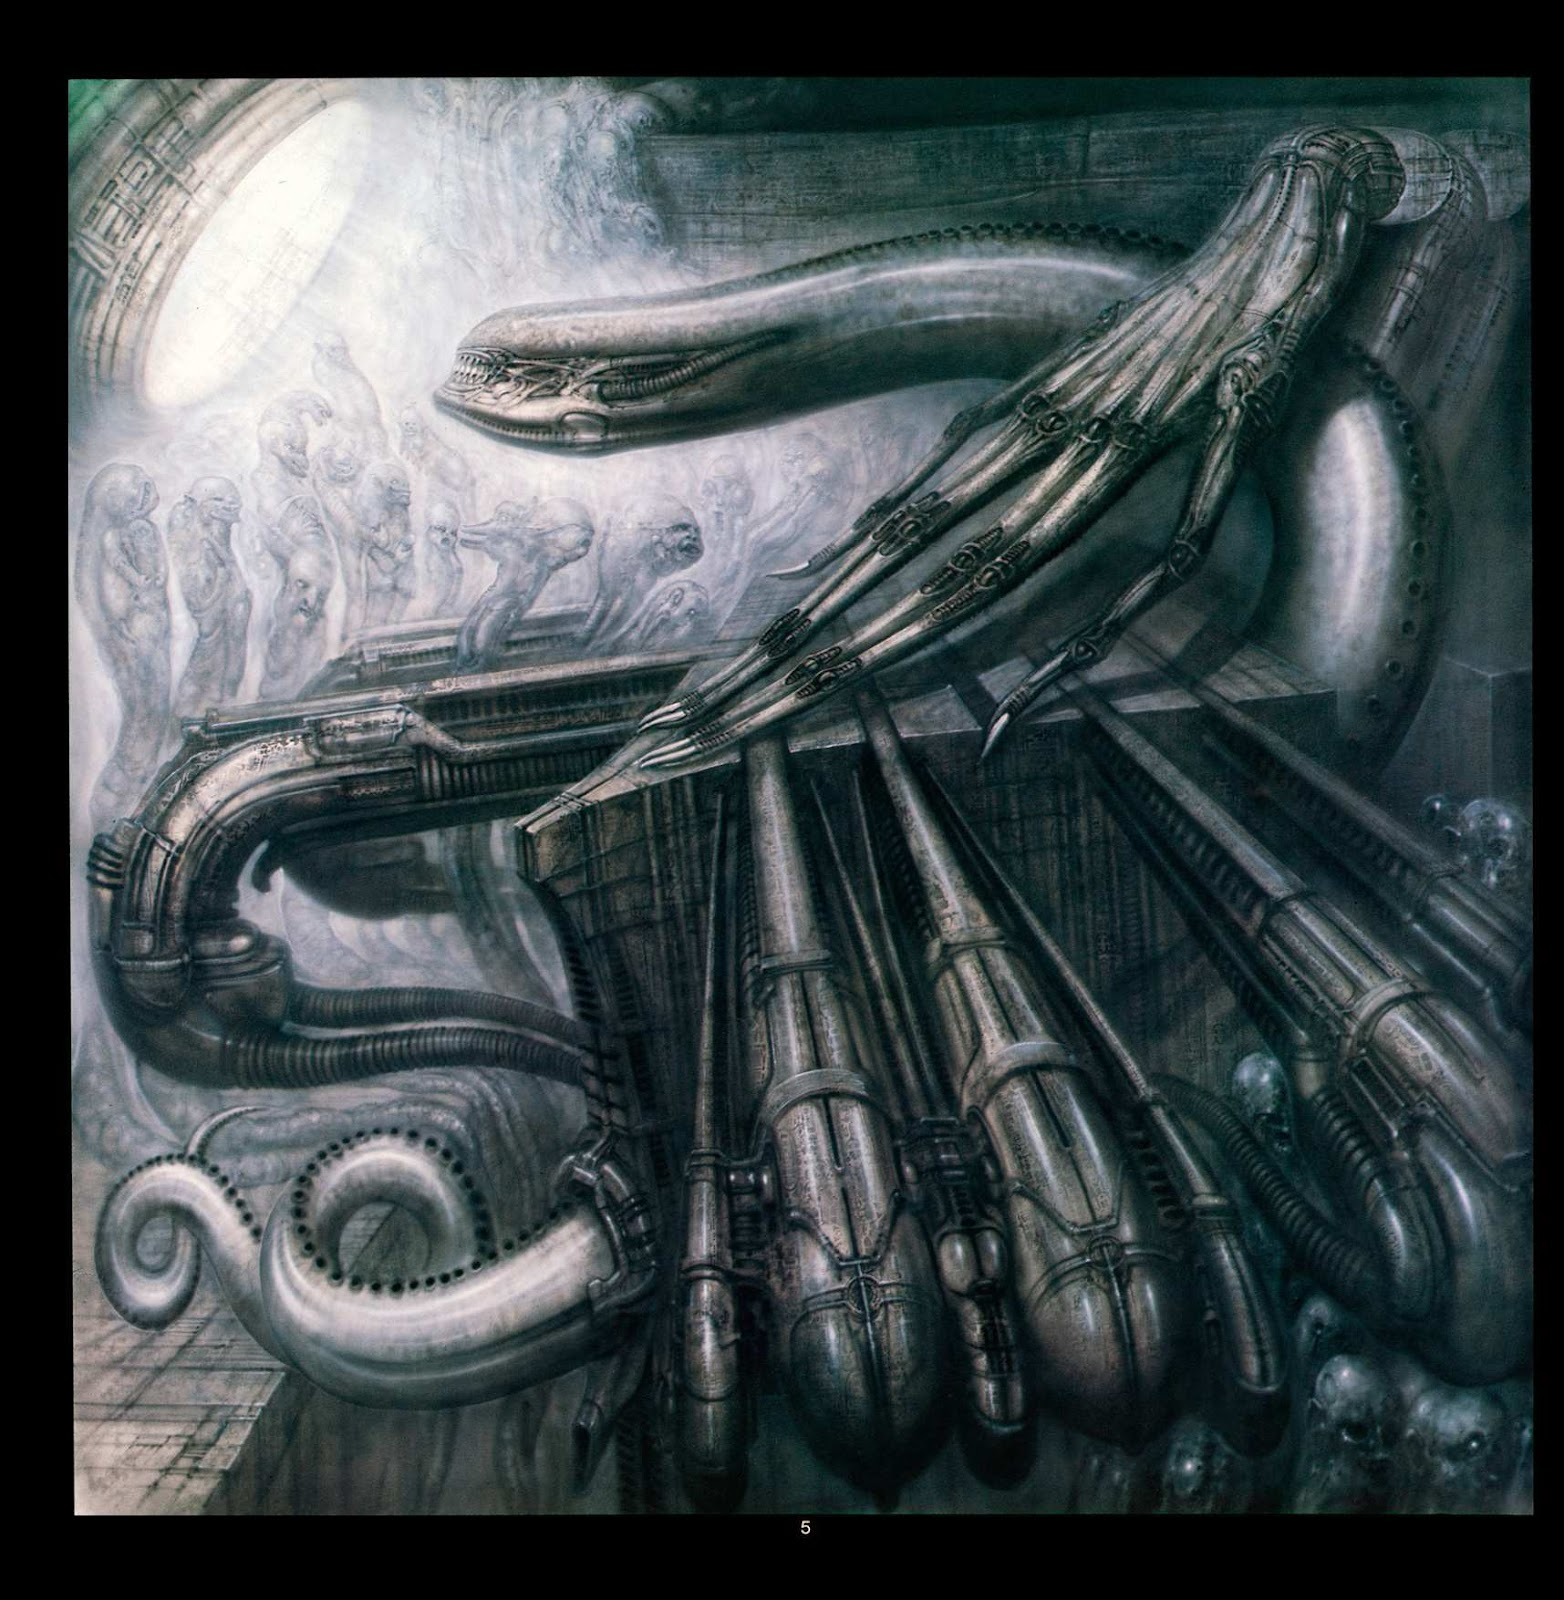 Read online Giger's Alien comic -  Issue # TPB - 7